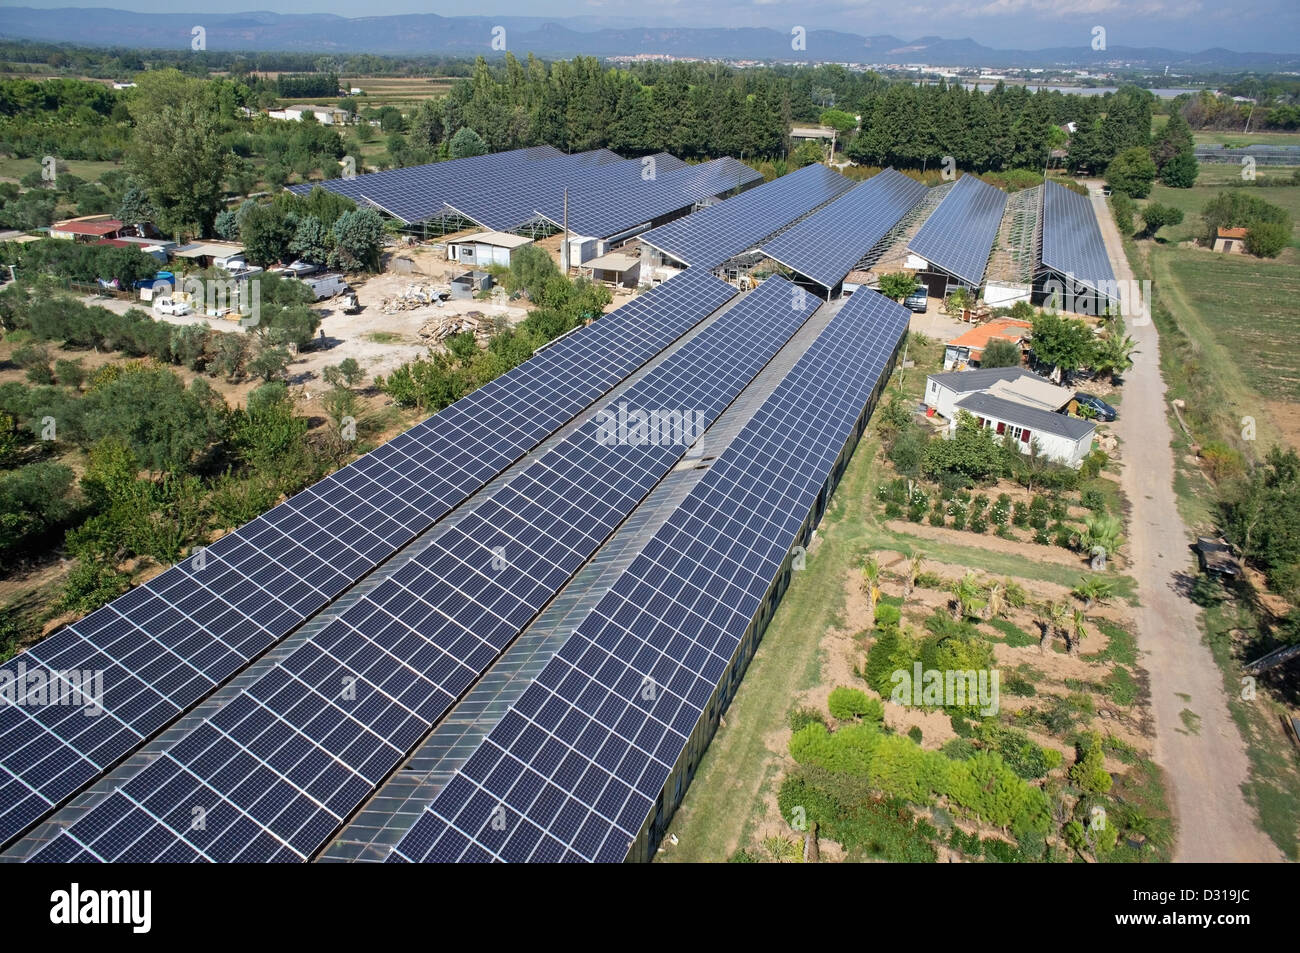 Aerial view of solar panels on commercial agricultural greenhouses, Roquebrune-sur-Argens, Var region, France - Stock Image